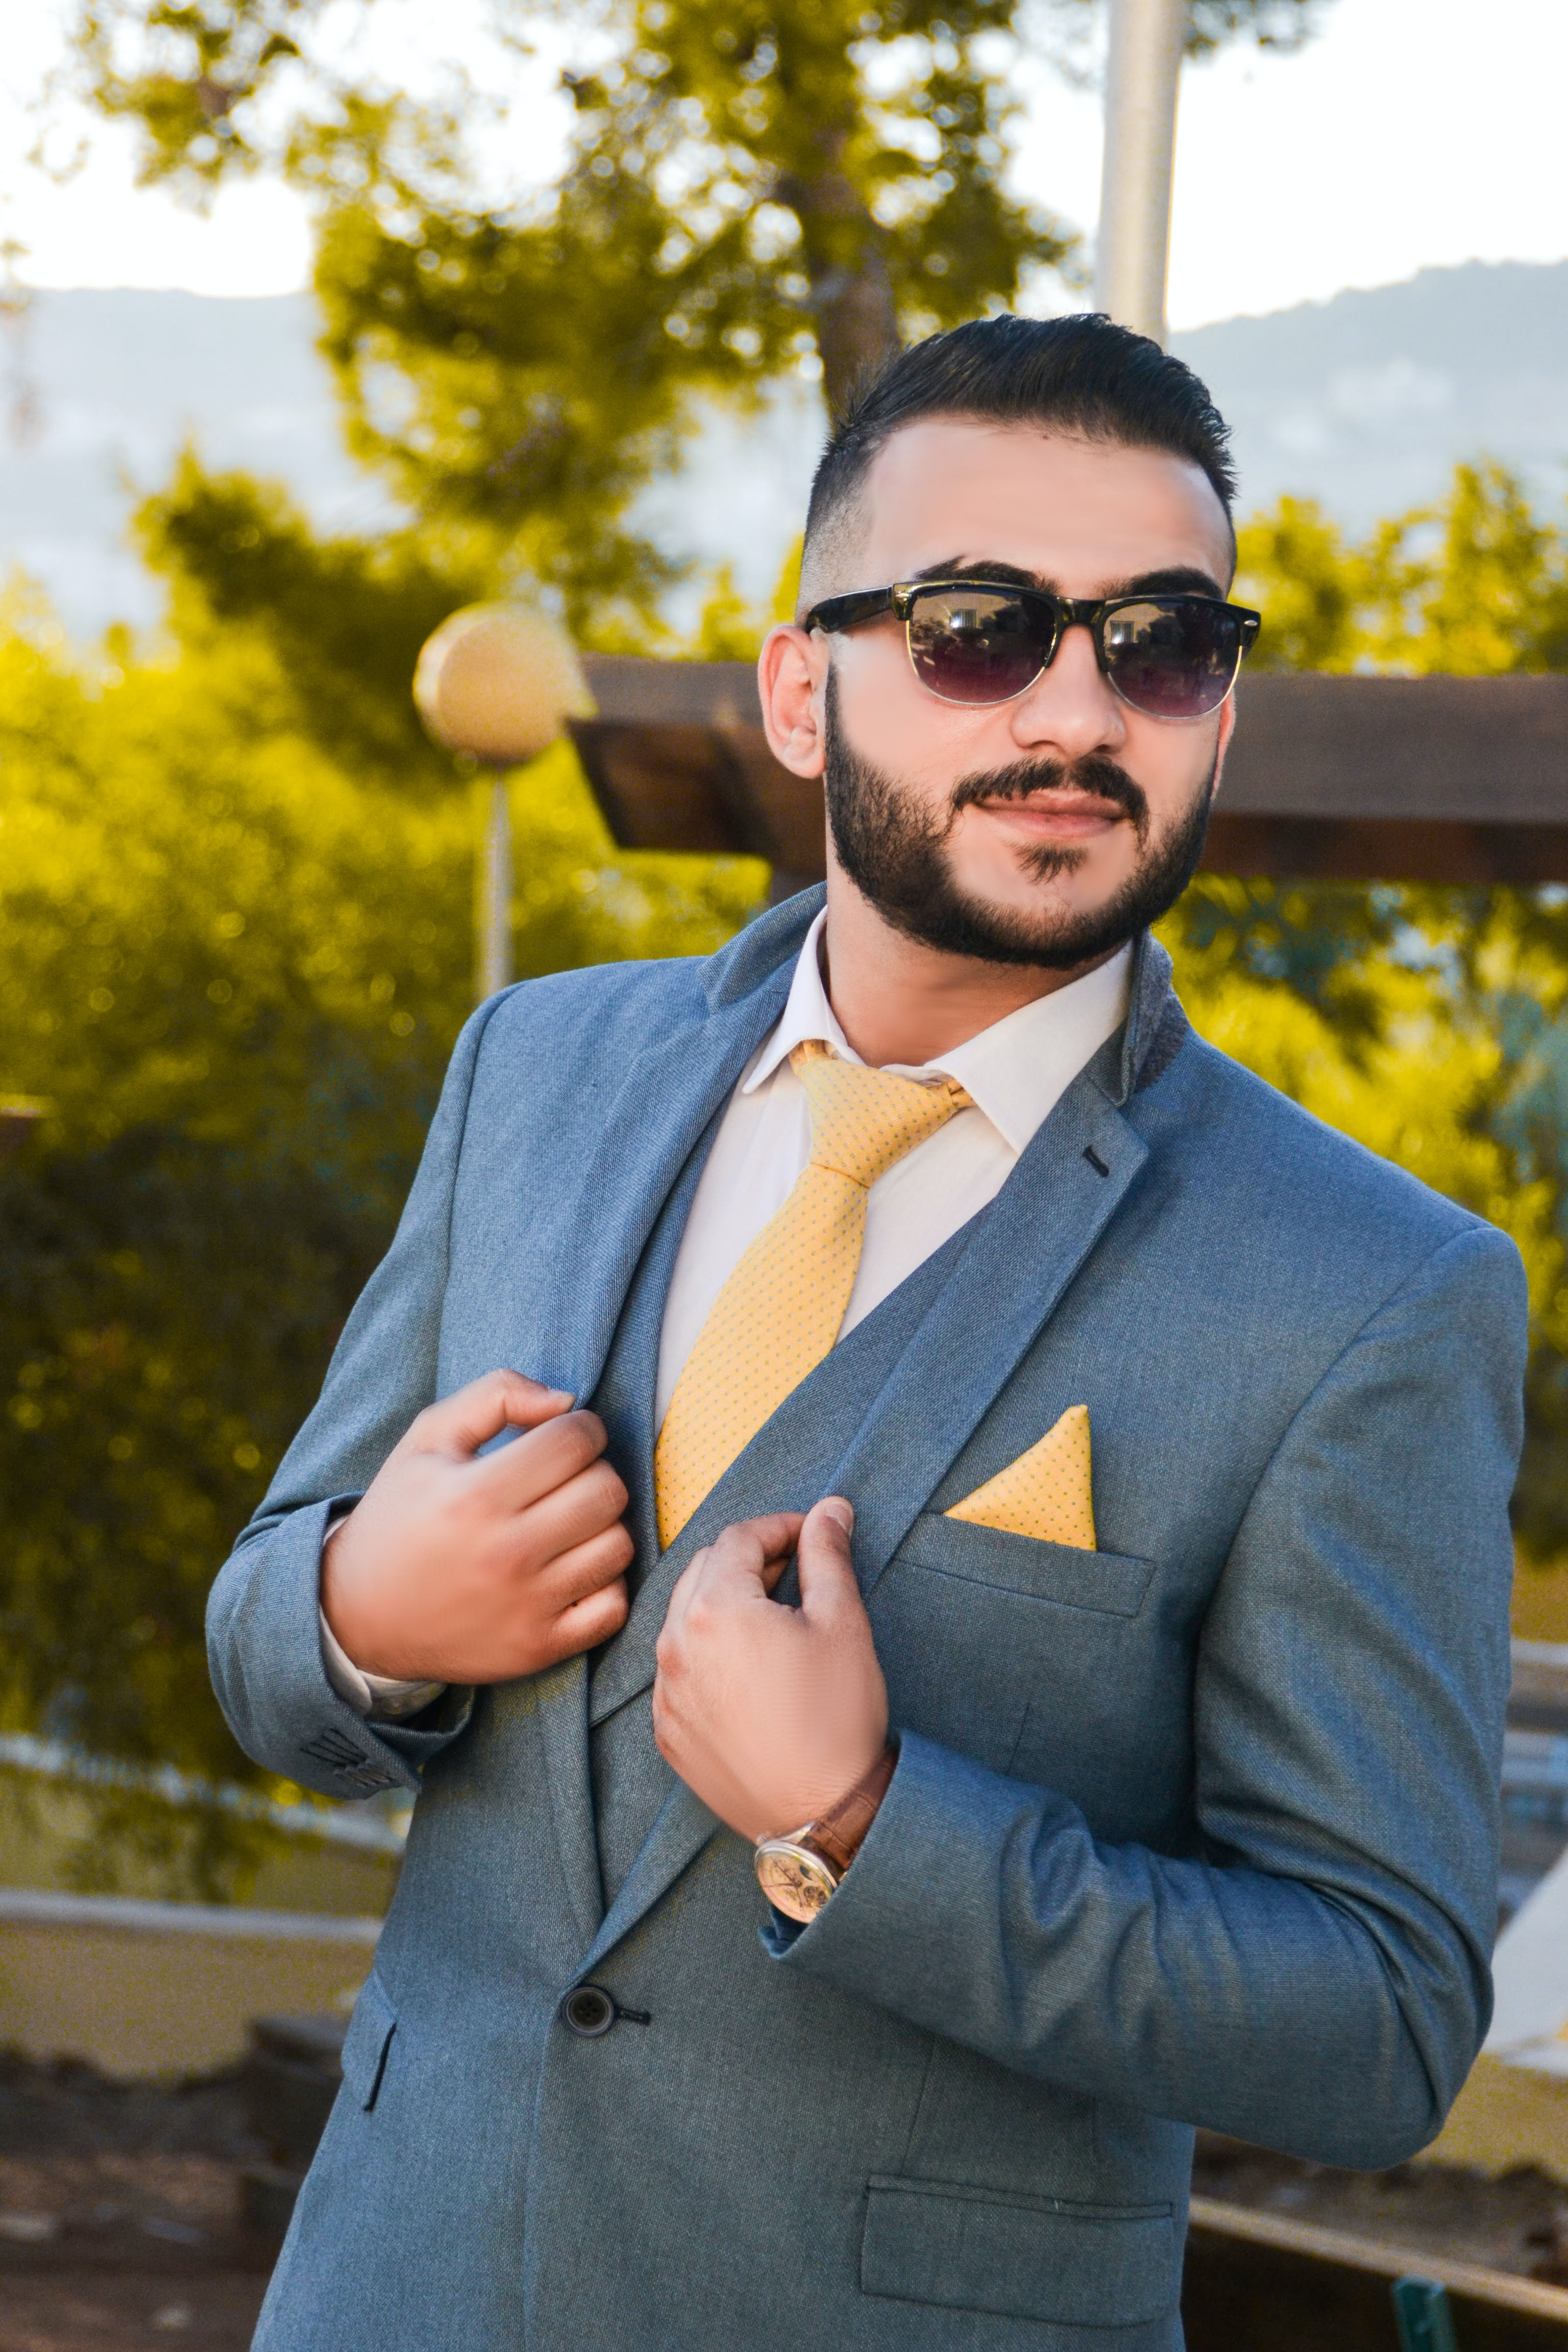 Man Wearing Suit Jacket With Sunglasses